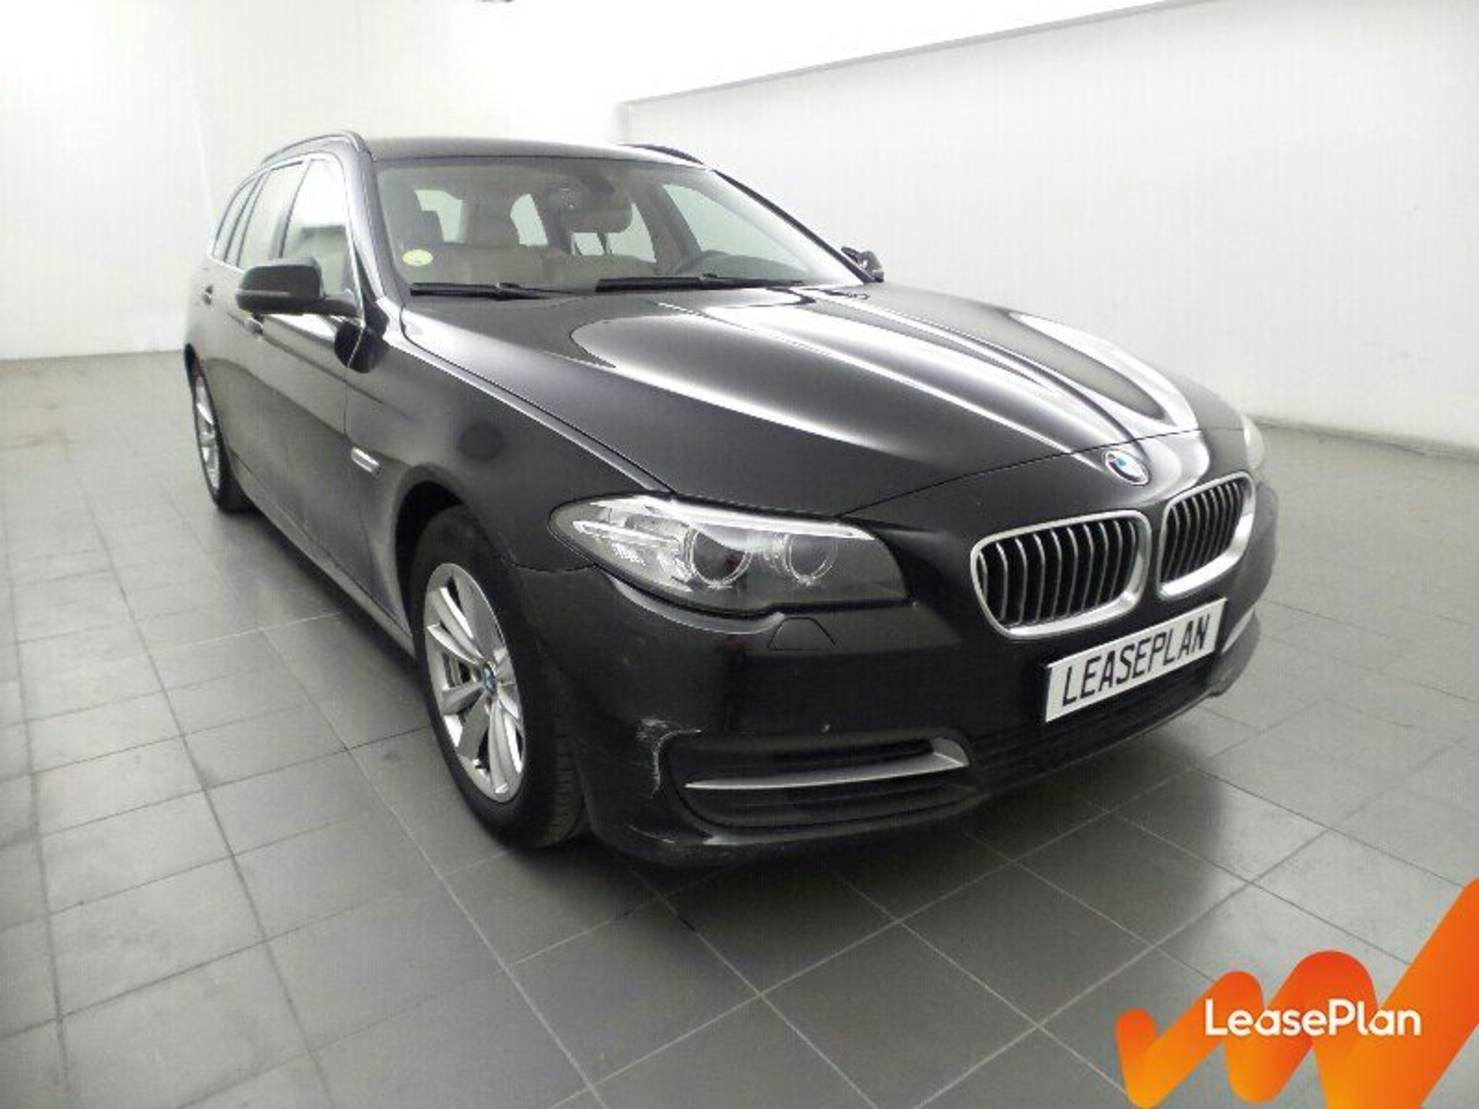 BMW 5 Serie Touring 518d 143 ch, Lounge Plus detail2